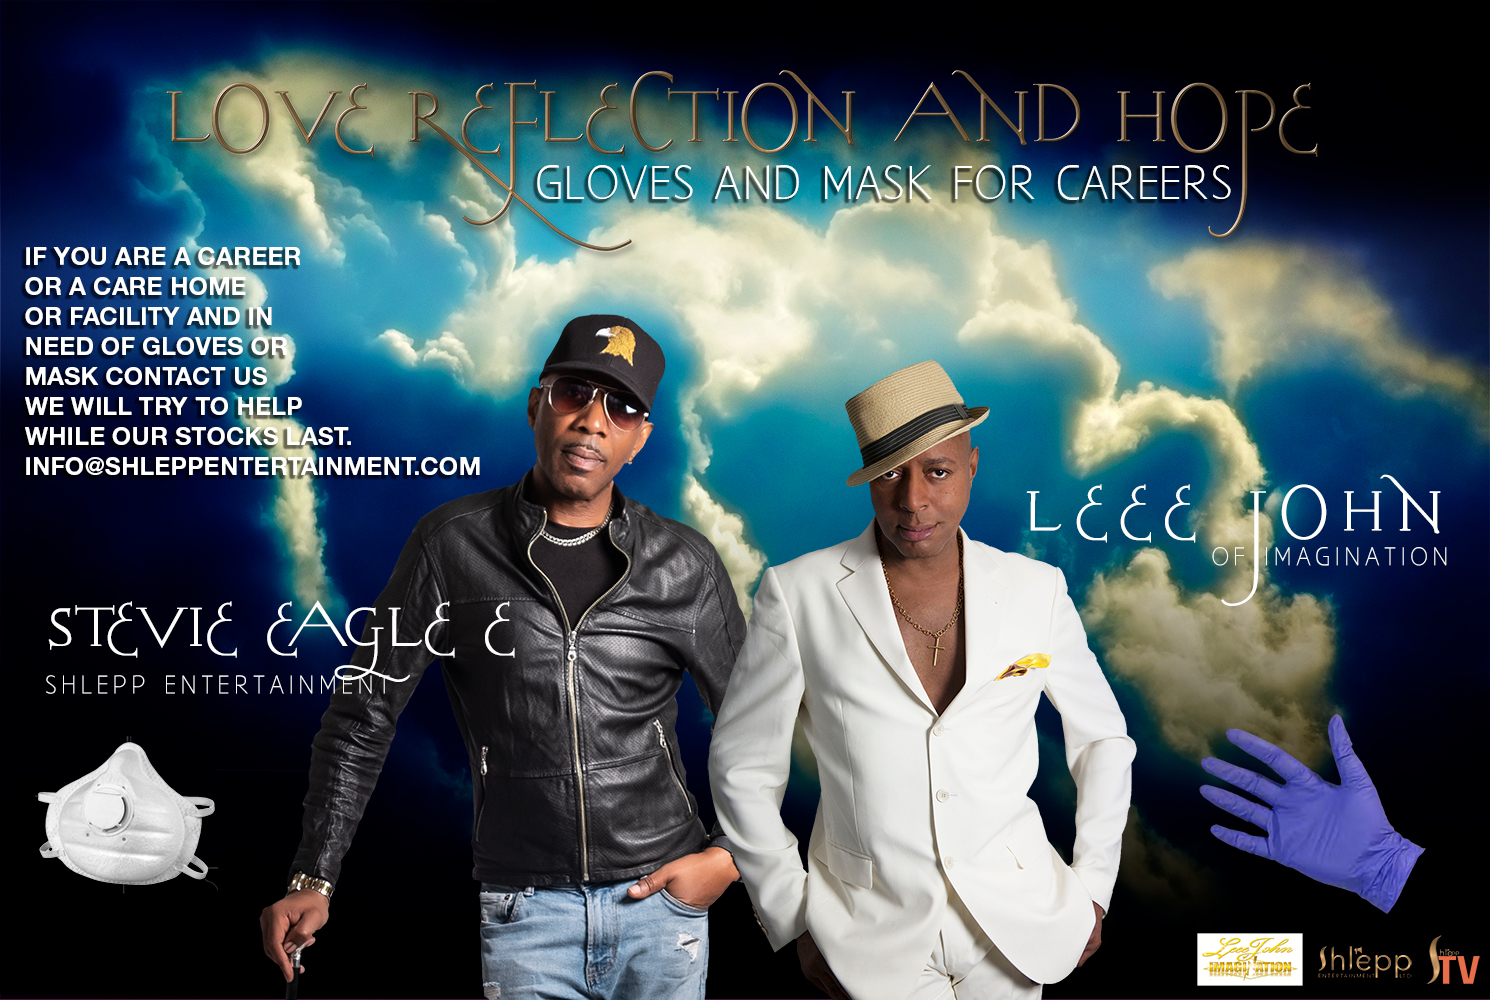 Leee John of Imagination and Stevie Eagle E of Shlepp Entertainment supplying mask and gloves to careers in the UK